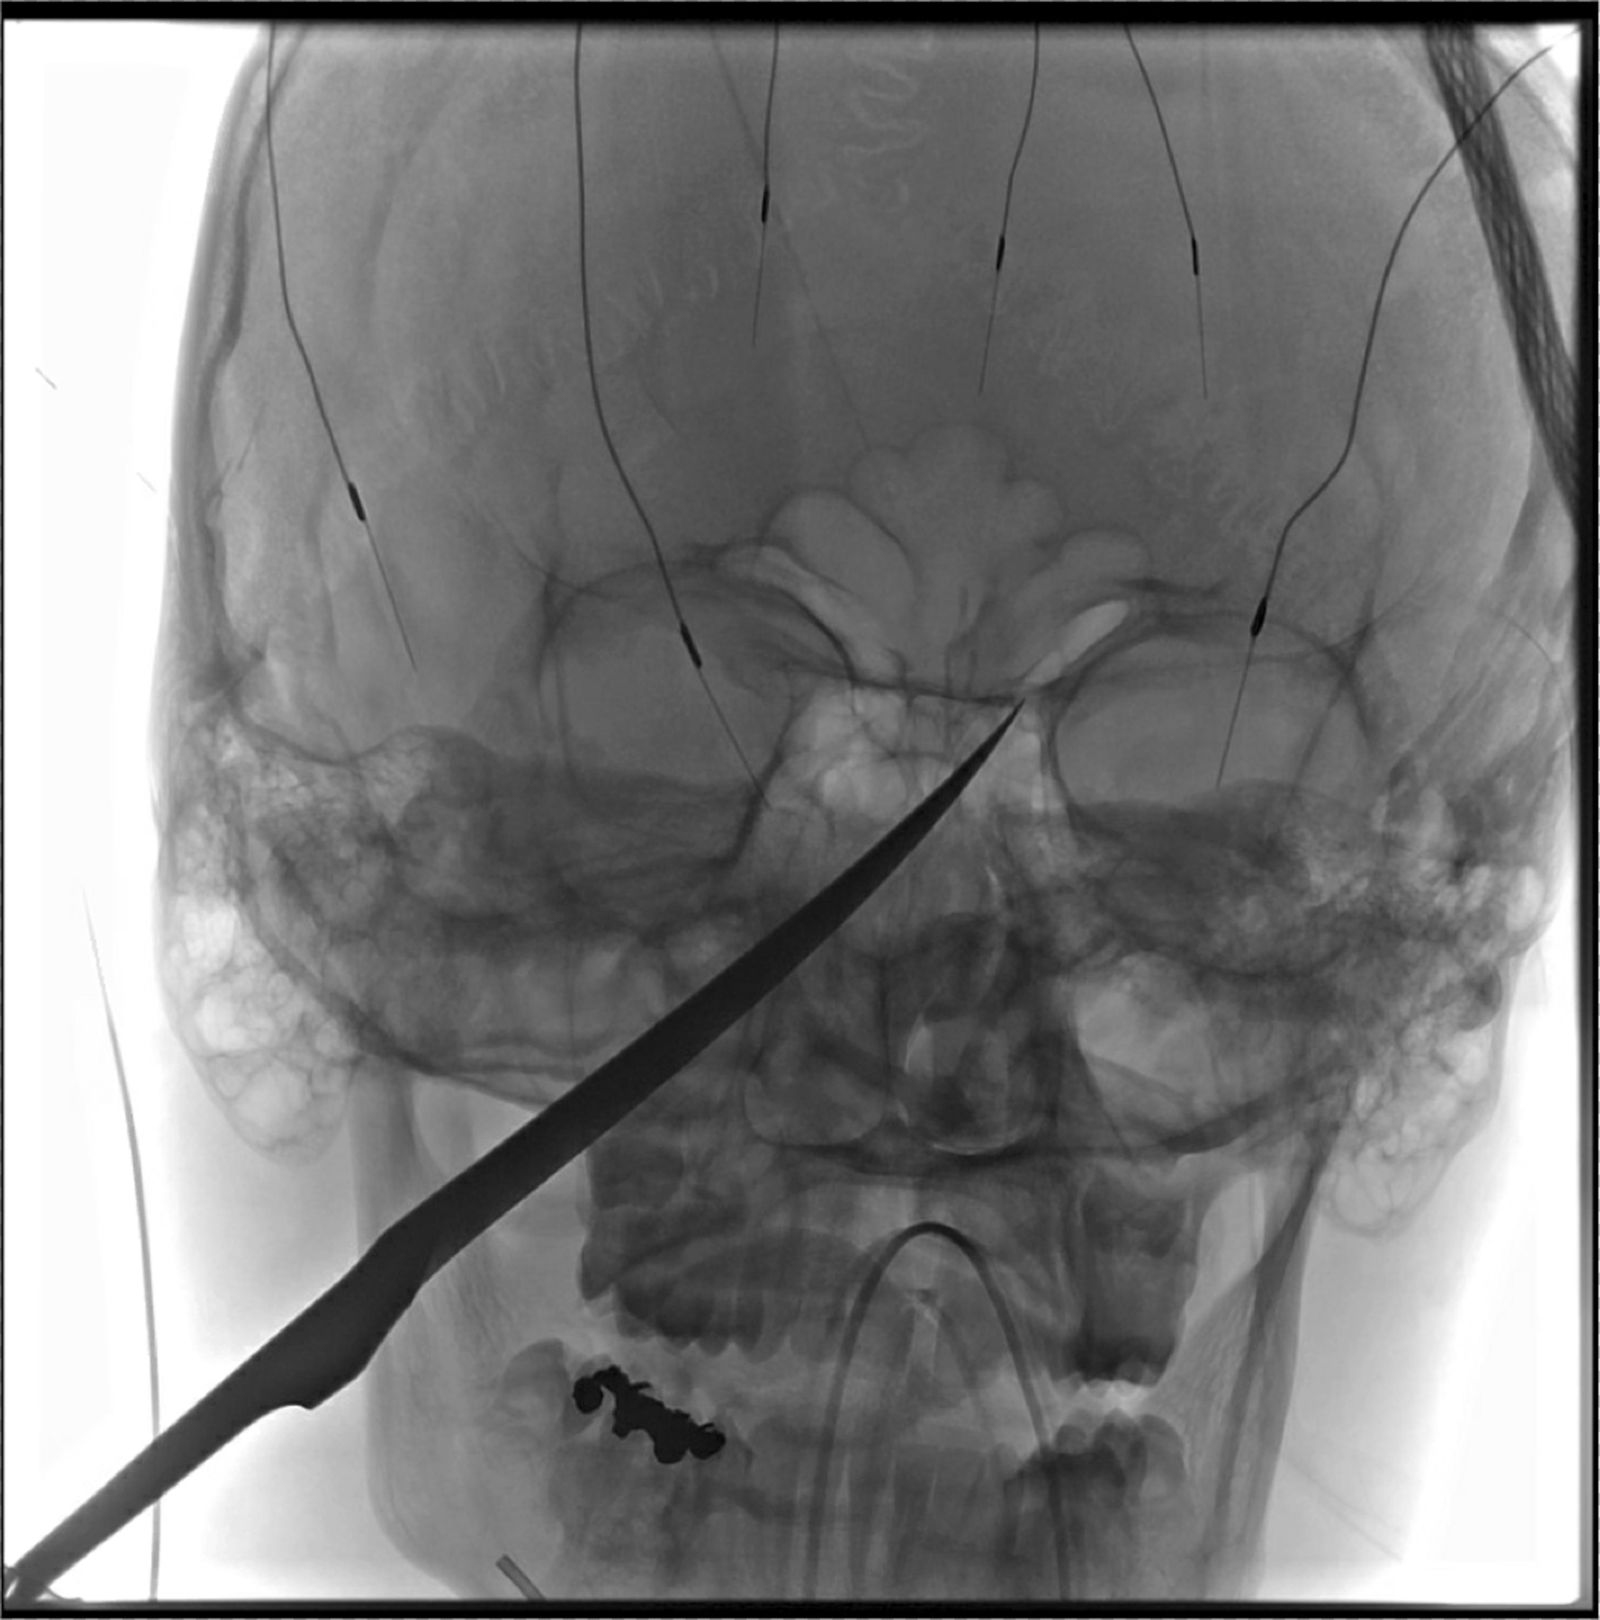 "This X-Ray imagery provided by The University of Kansas Health System shows the skull of Eli Gregg with a knife embedded. The 15-year-old Kansas boy is recovering days after doctors removed a 10"" knife that impaled his face when he fell while playing. Gregg's harrowing experience began late Thursday, June 13, 2019, when he was playing outside his home in Redfield, about 11 miles from Fort Scott in southeast Kansas. The knife was embedded into his skull, extending to the underside of the brain. The tip of it had indented the carotid artery, the major artery which supplies blood to the brain. Surgeons at The University of Kansas Health System removed it Friday morning. Eli is expected to be able to go home Monday and should recover fully. (The University of Kansas Health System via AP)"